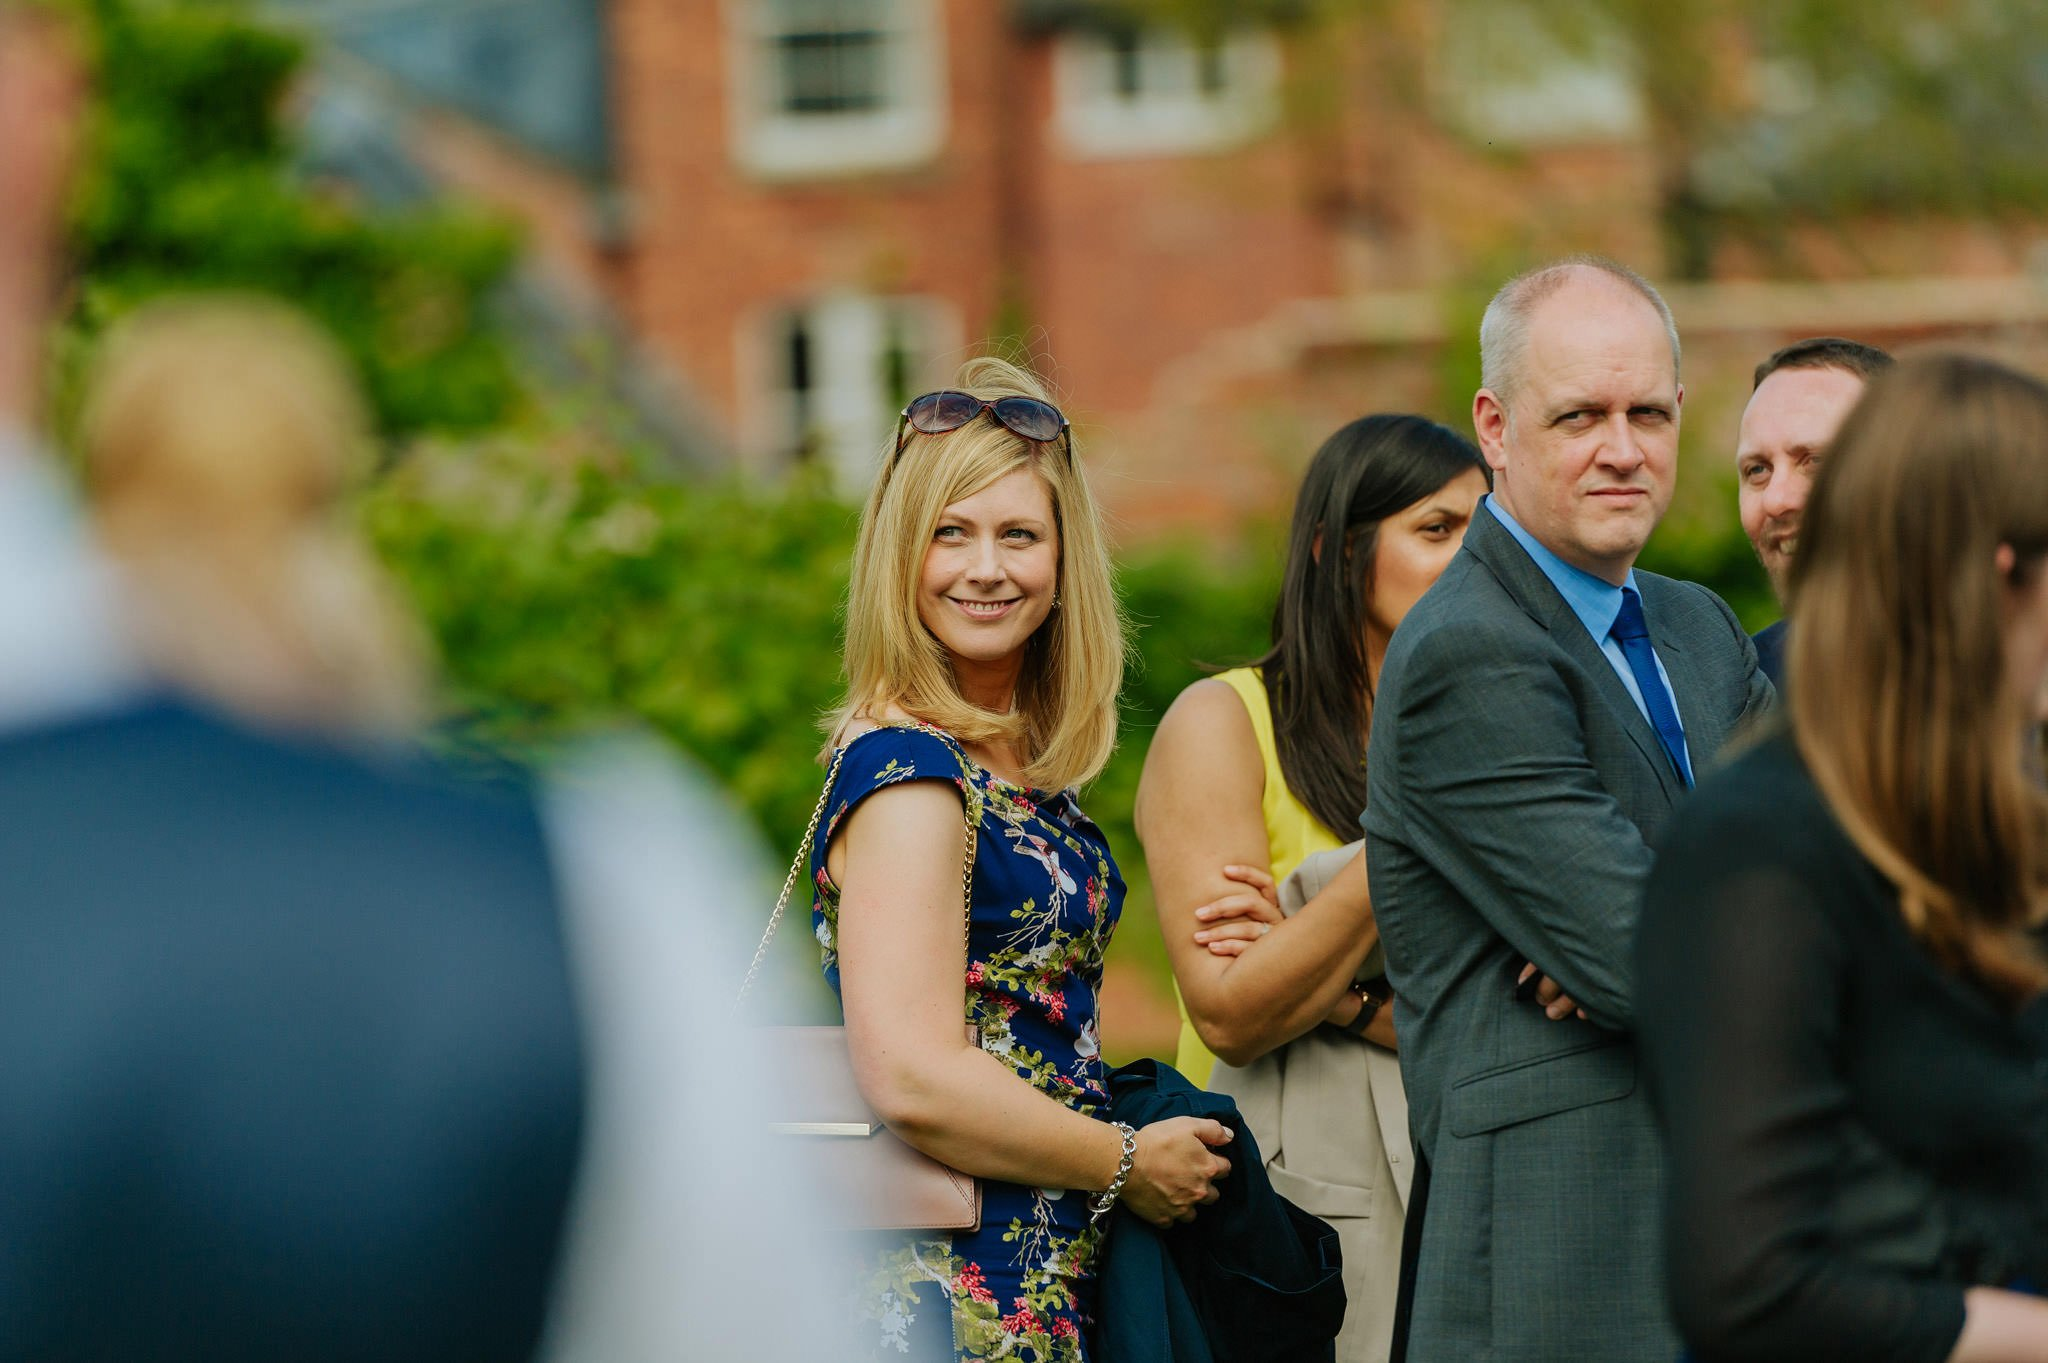 Wedding photography at Homme House in Herefordshire, West Midlands 48